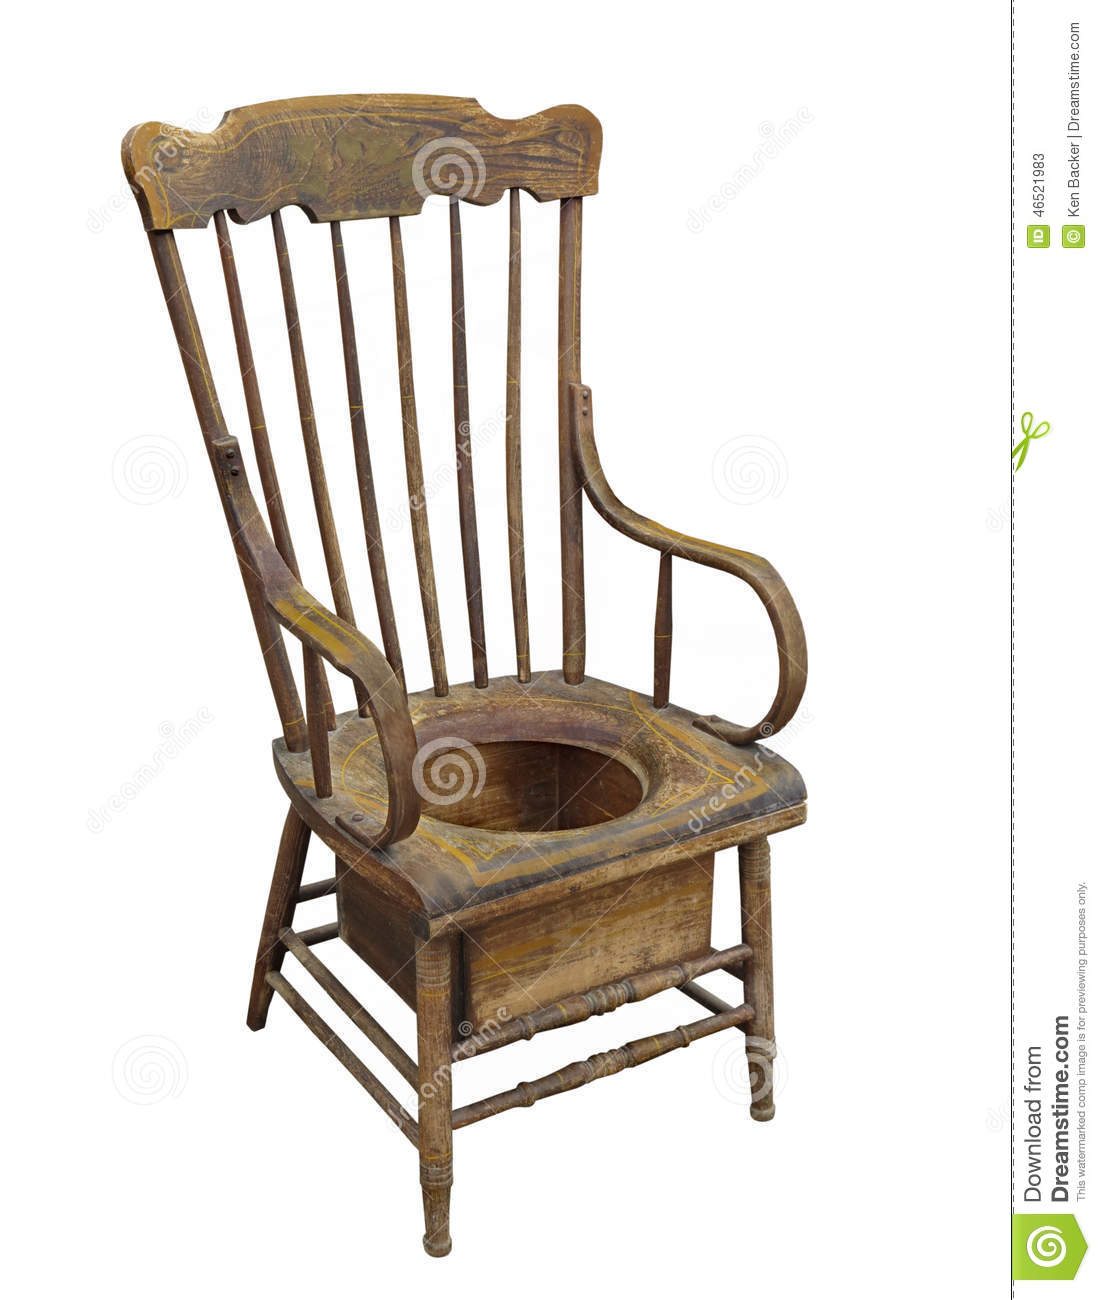 old wooden adult potty chair isolated stock photo image. Black Bedroom Furniture Sets. Home Design Ideas